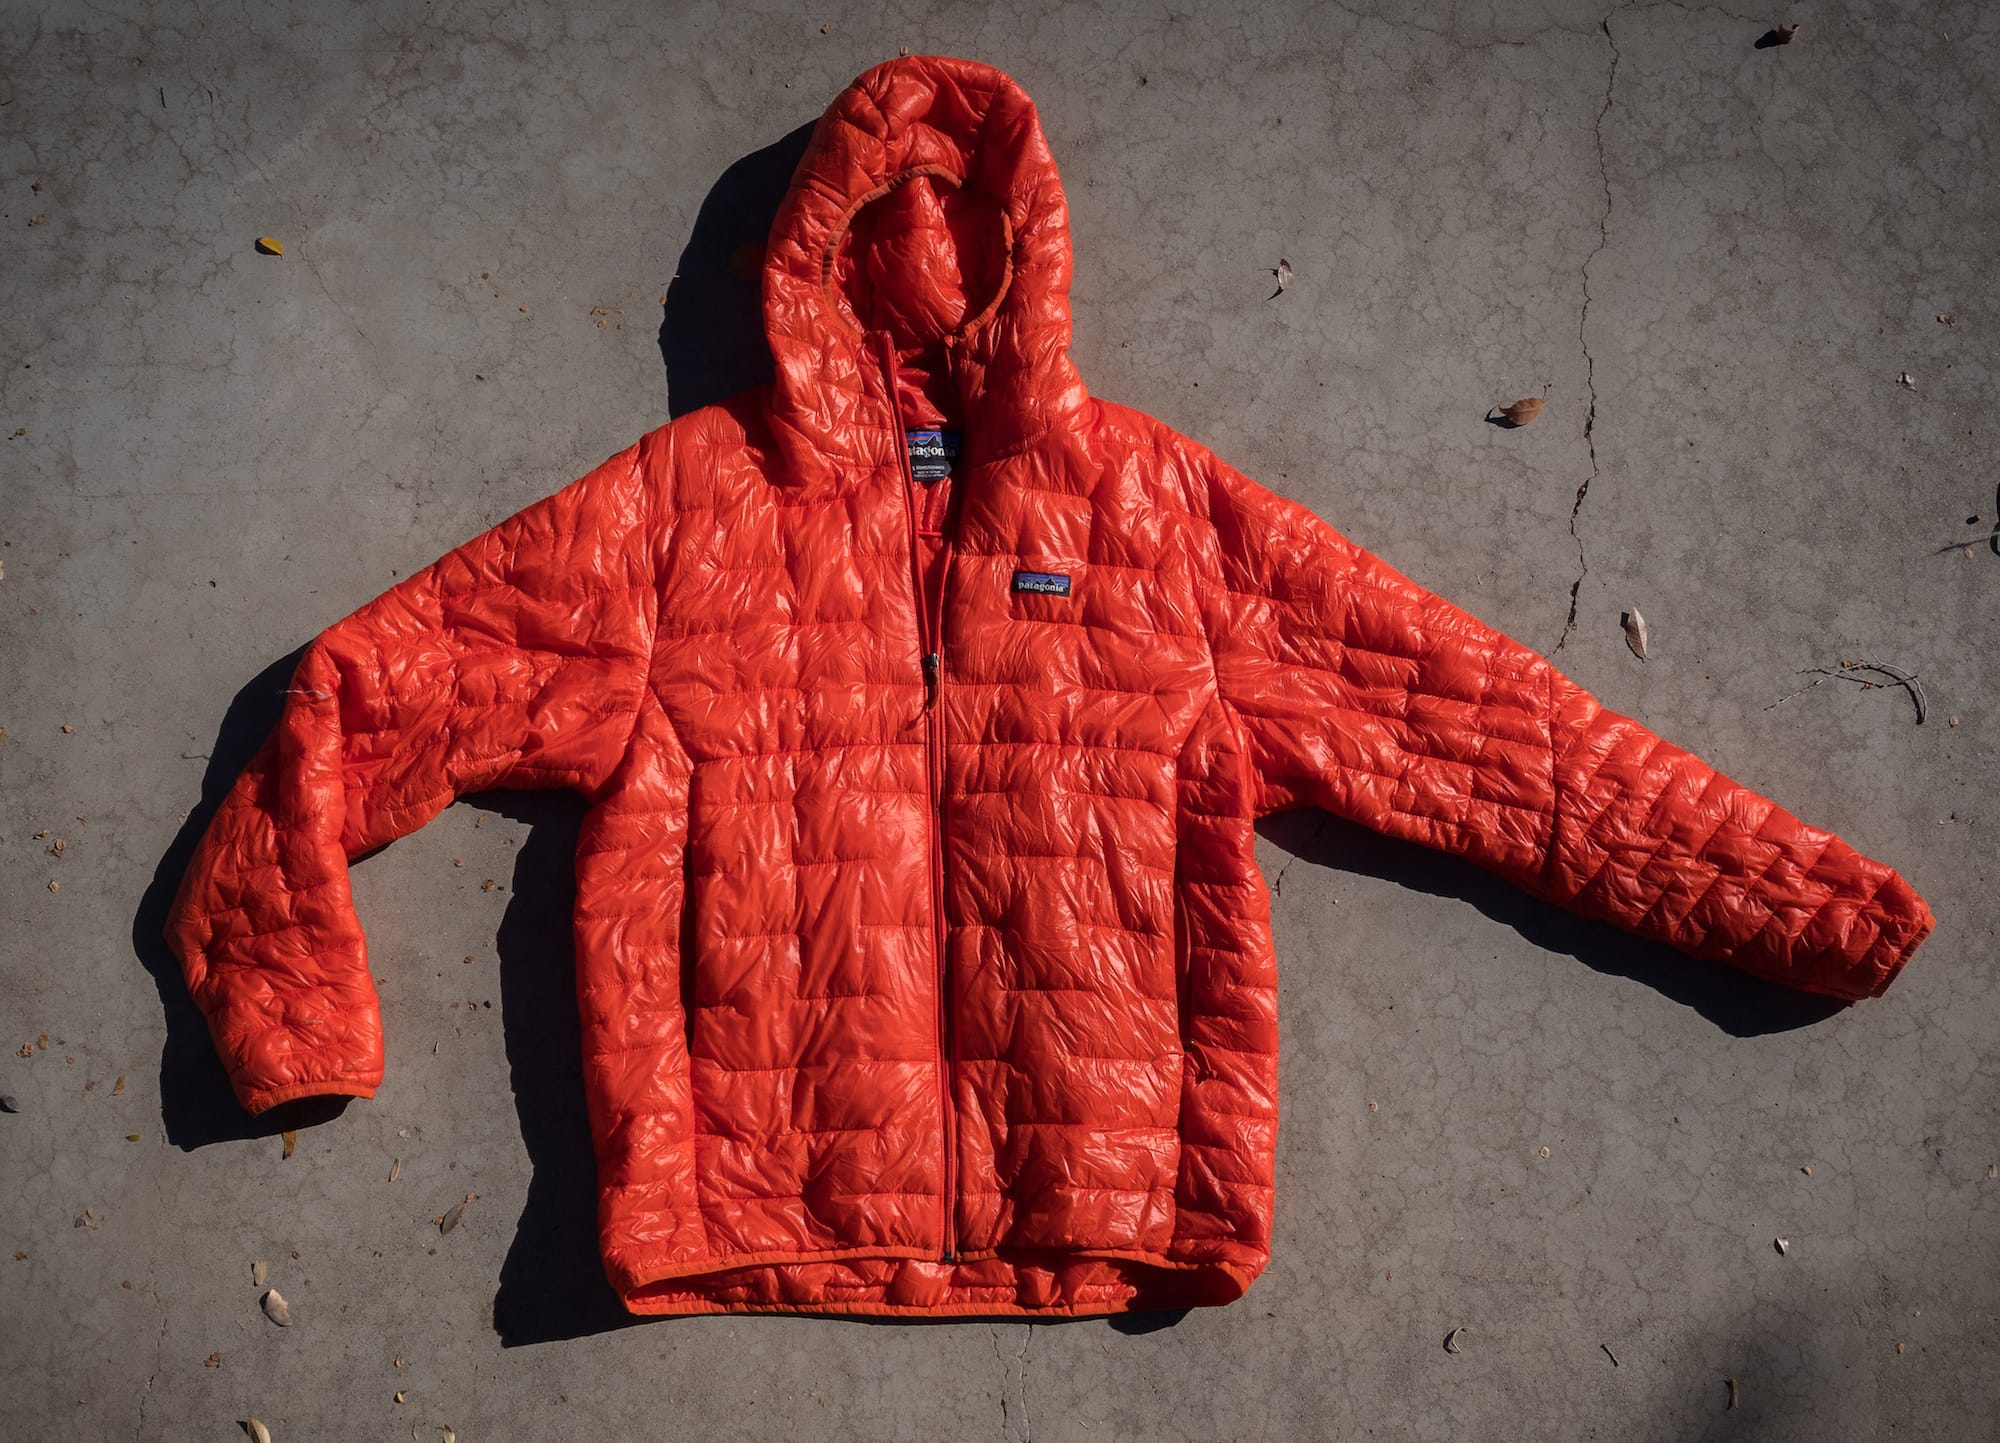 Best outdoor gear 2017: Patagonia MicroPuff hoody